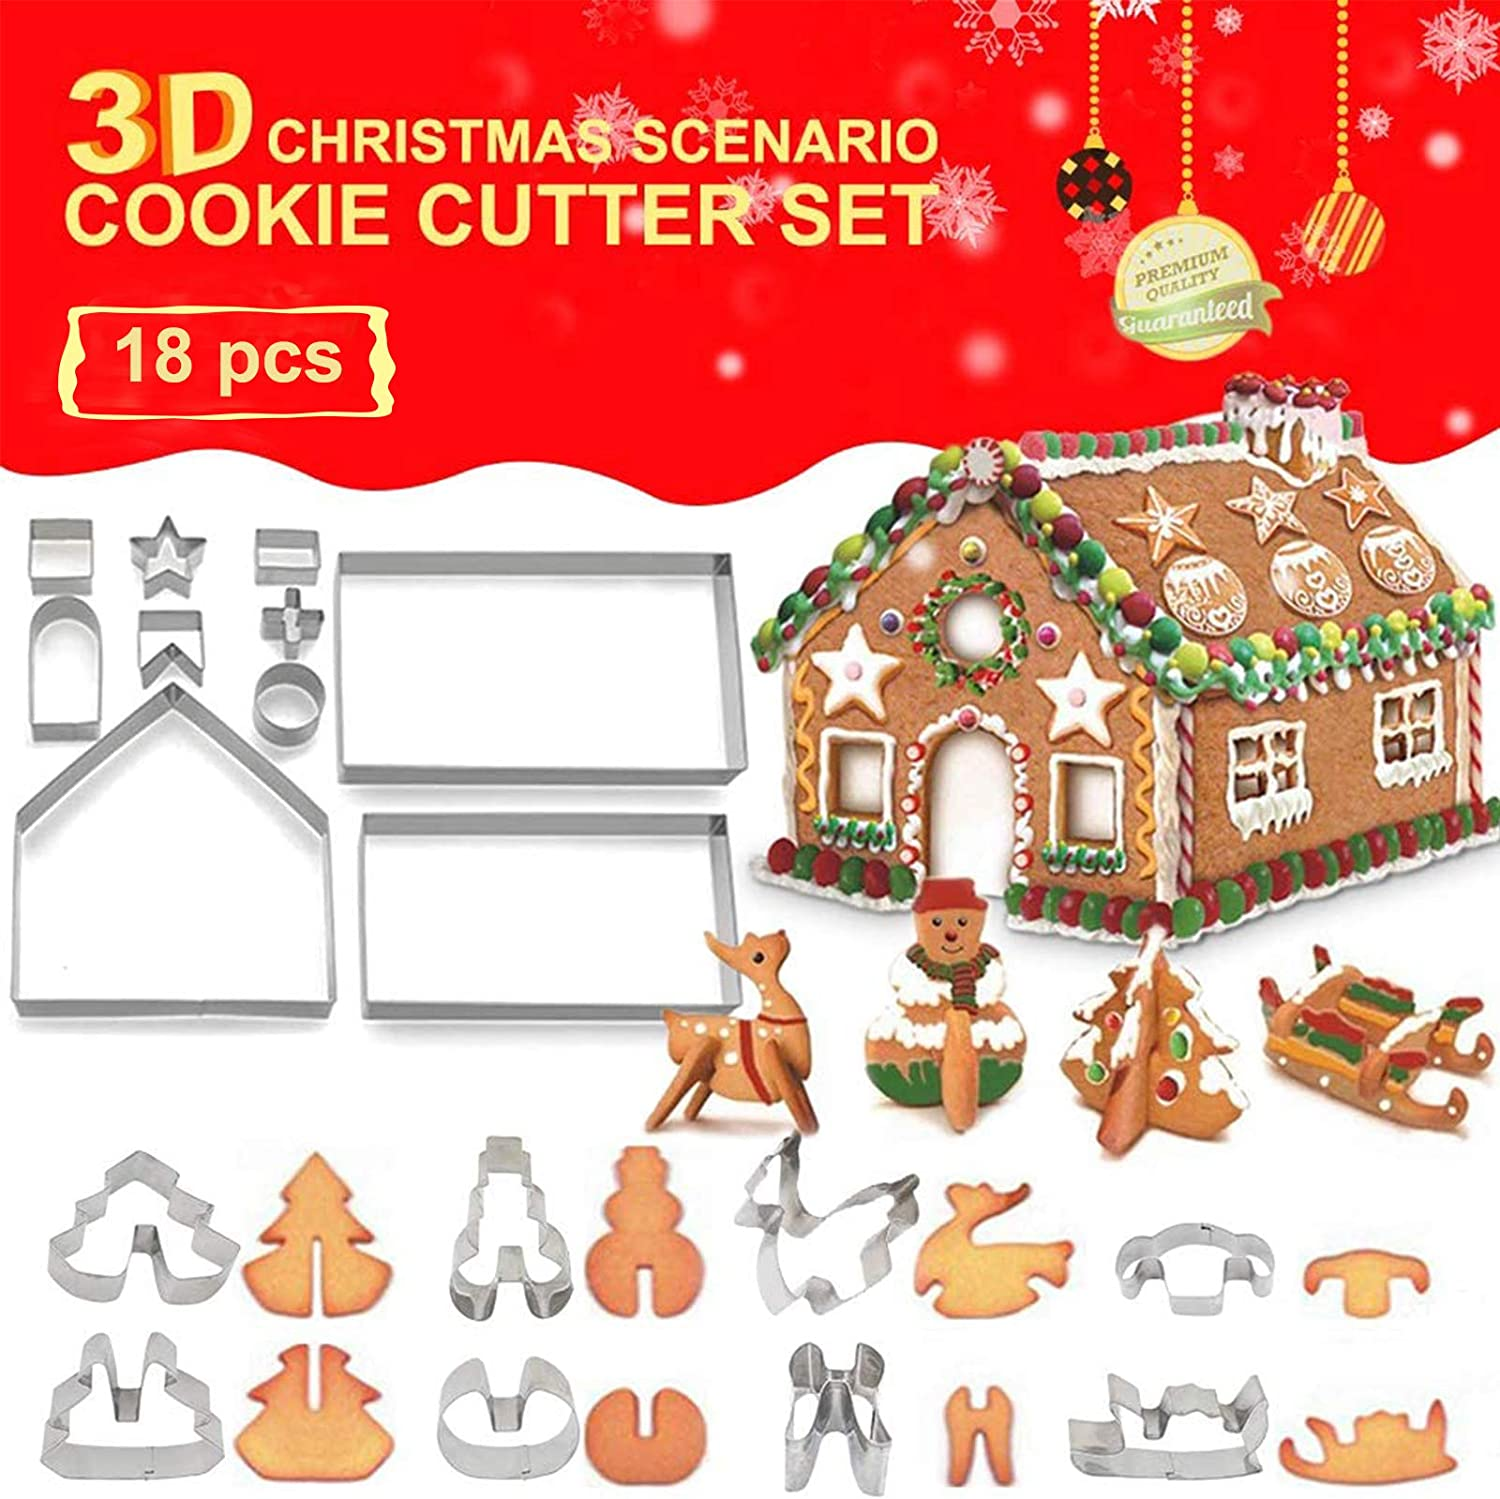 18-piece Set Gingerbread House Stainless Steel Christmas Scenario Cookie Cutter